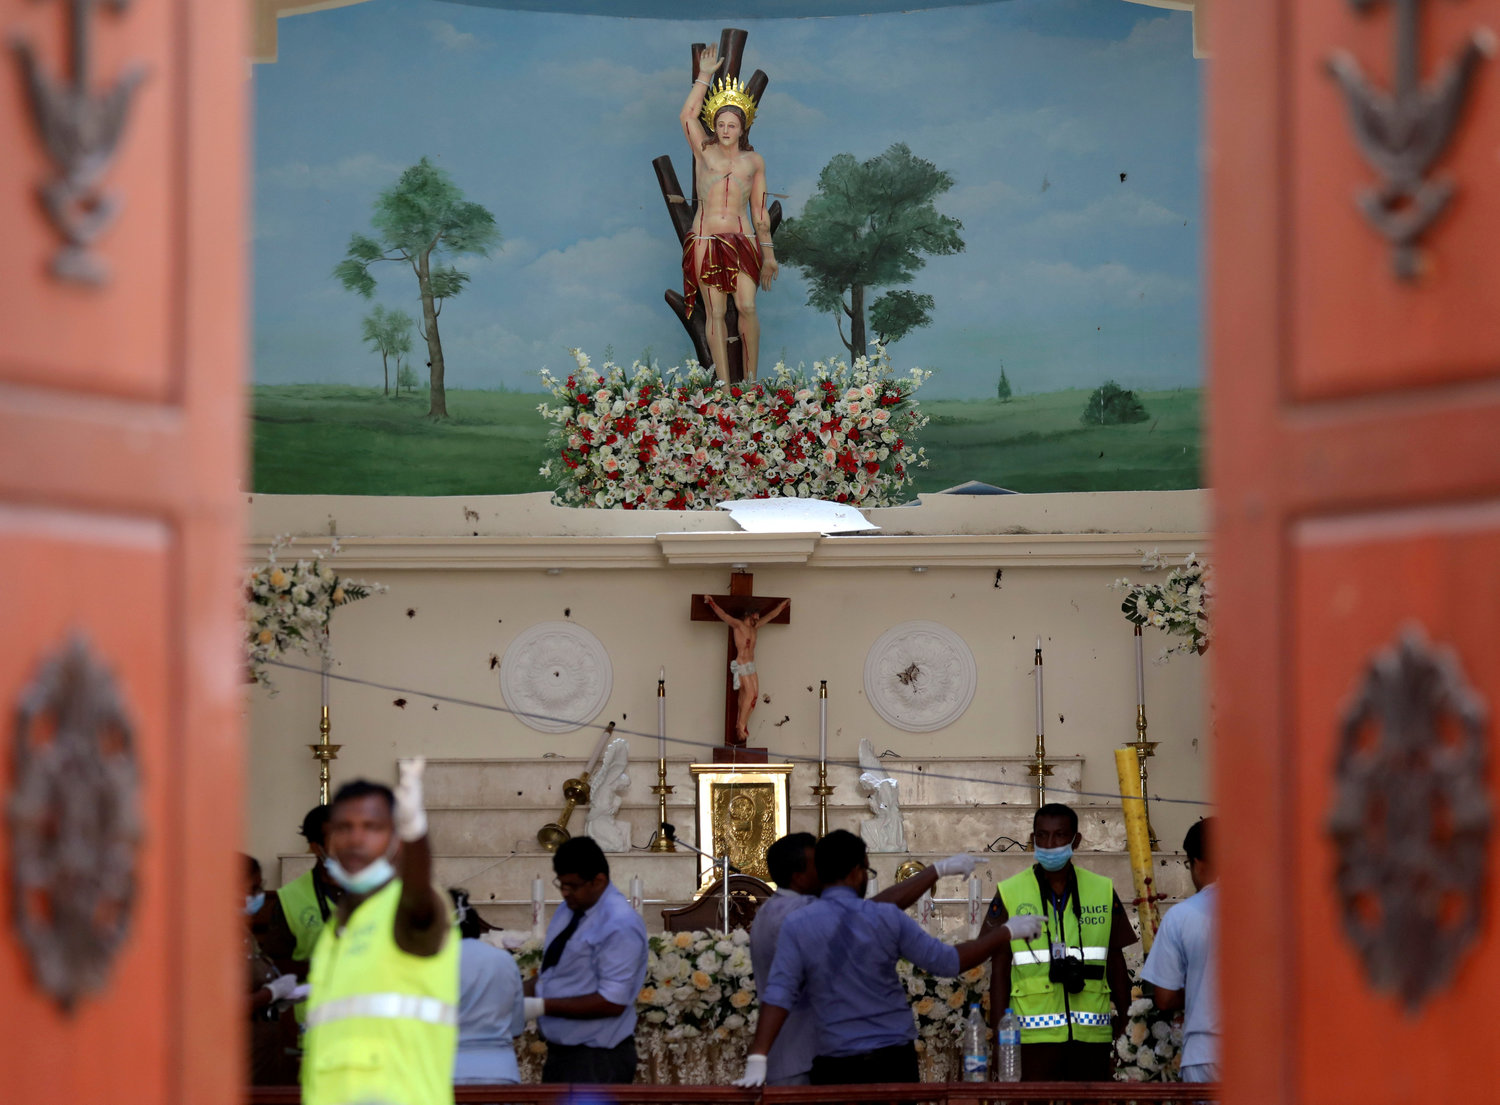 Police officers work the scene at St. Sebastian Catholic Church in Negombo, Sri Lanka April 22, 2019, after bomb blasts ripped through churches and luxury hotels the previous dauy. Sri Lankan officials reported 290 confirmed deaths from the eight blasts at churches and hotels in three cities.